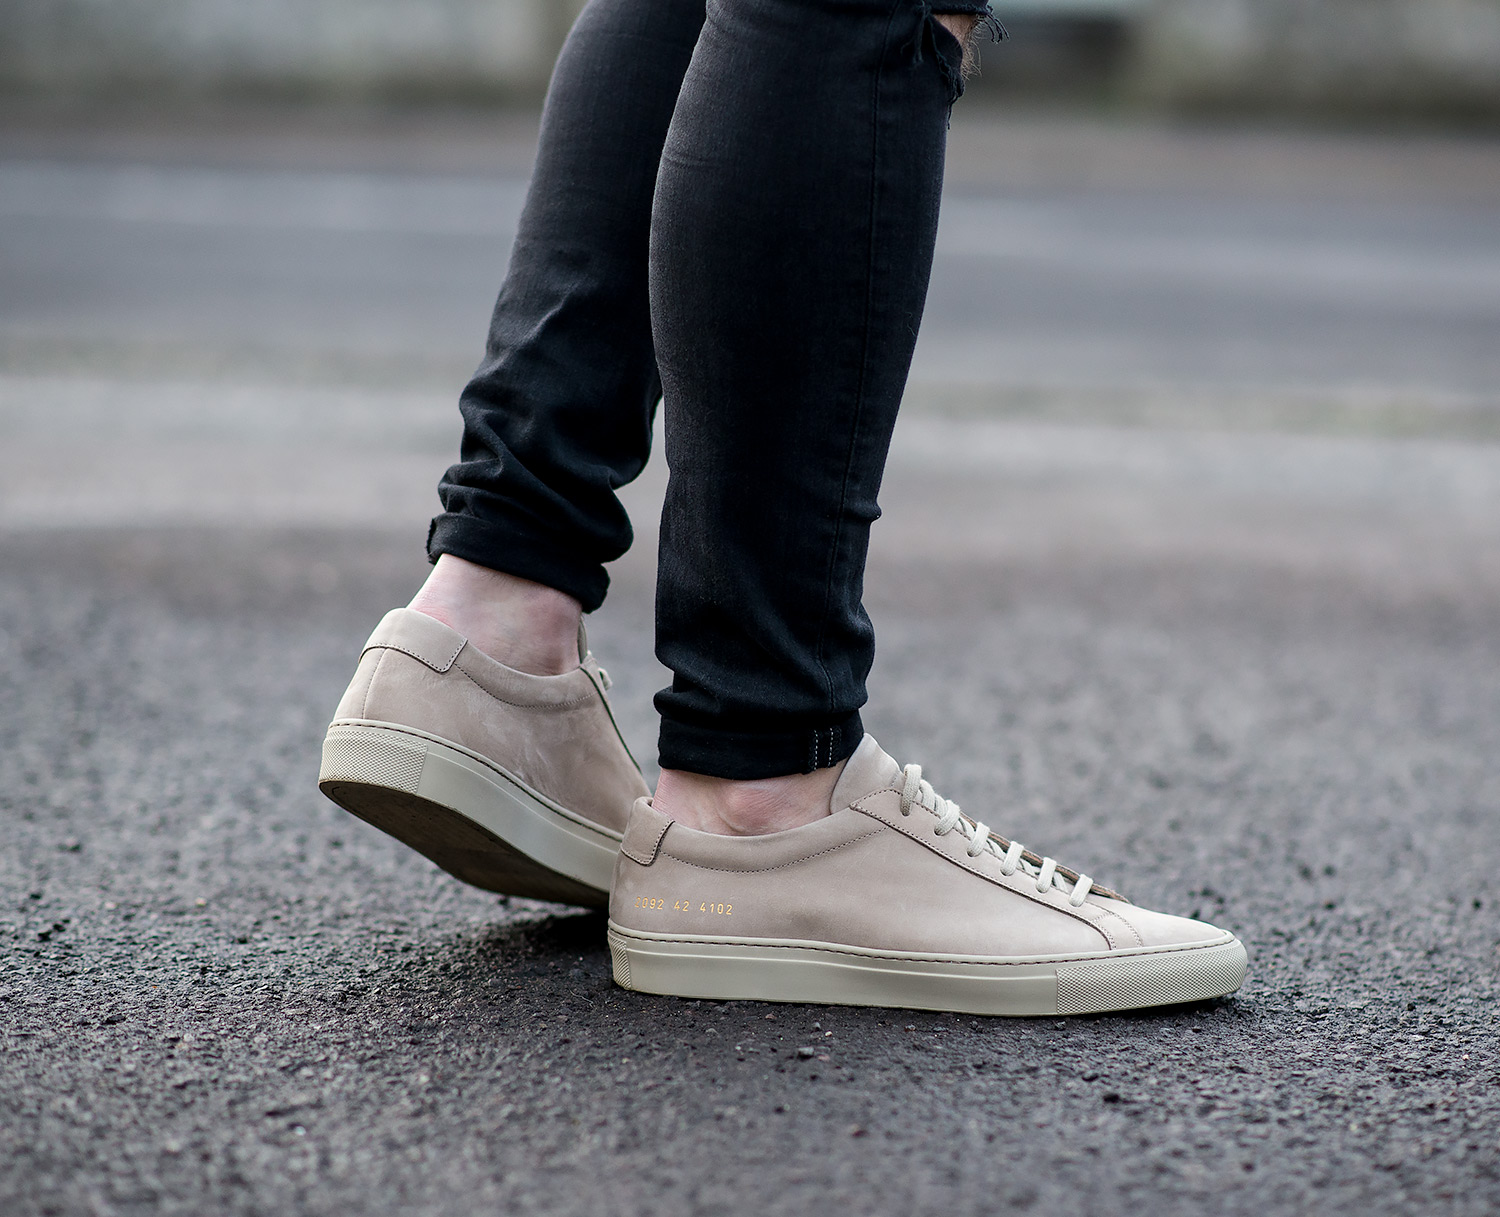 76445f38e9d09 Common Projects Achilles Low Top Sneakers Review